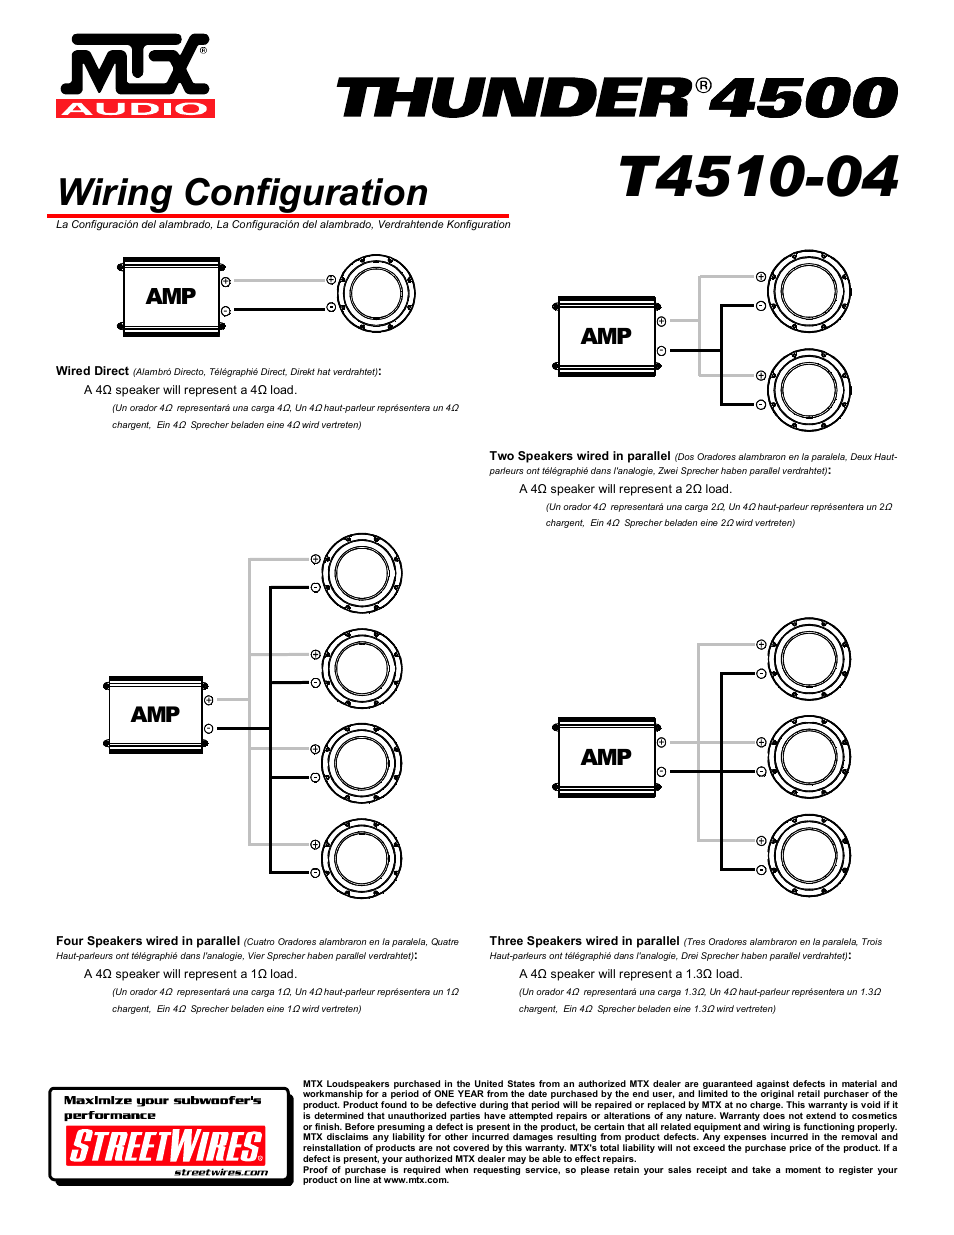 Wiring Configuration Mtx Audio Thunder 4500 T4510 04 User Amp Diagram Manual Page 4